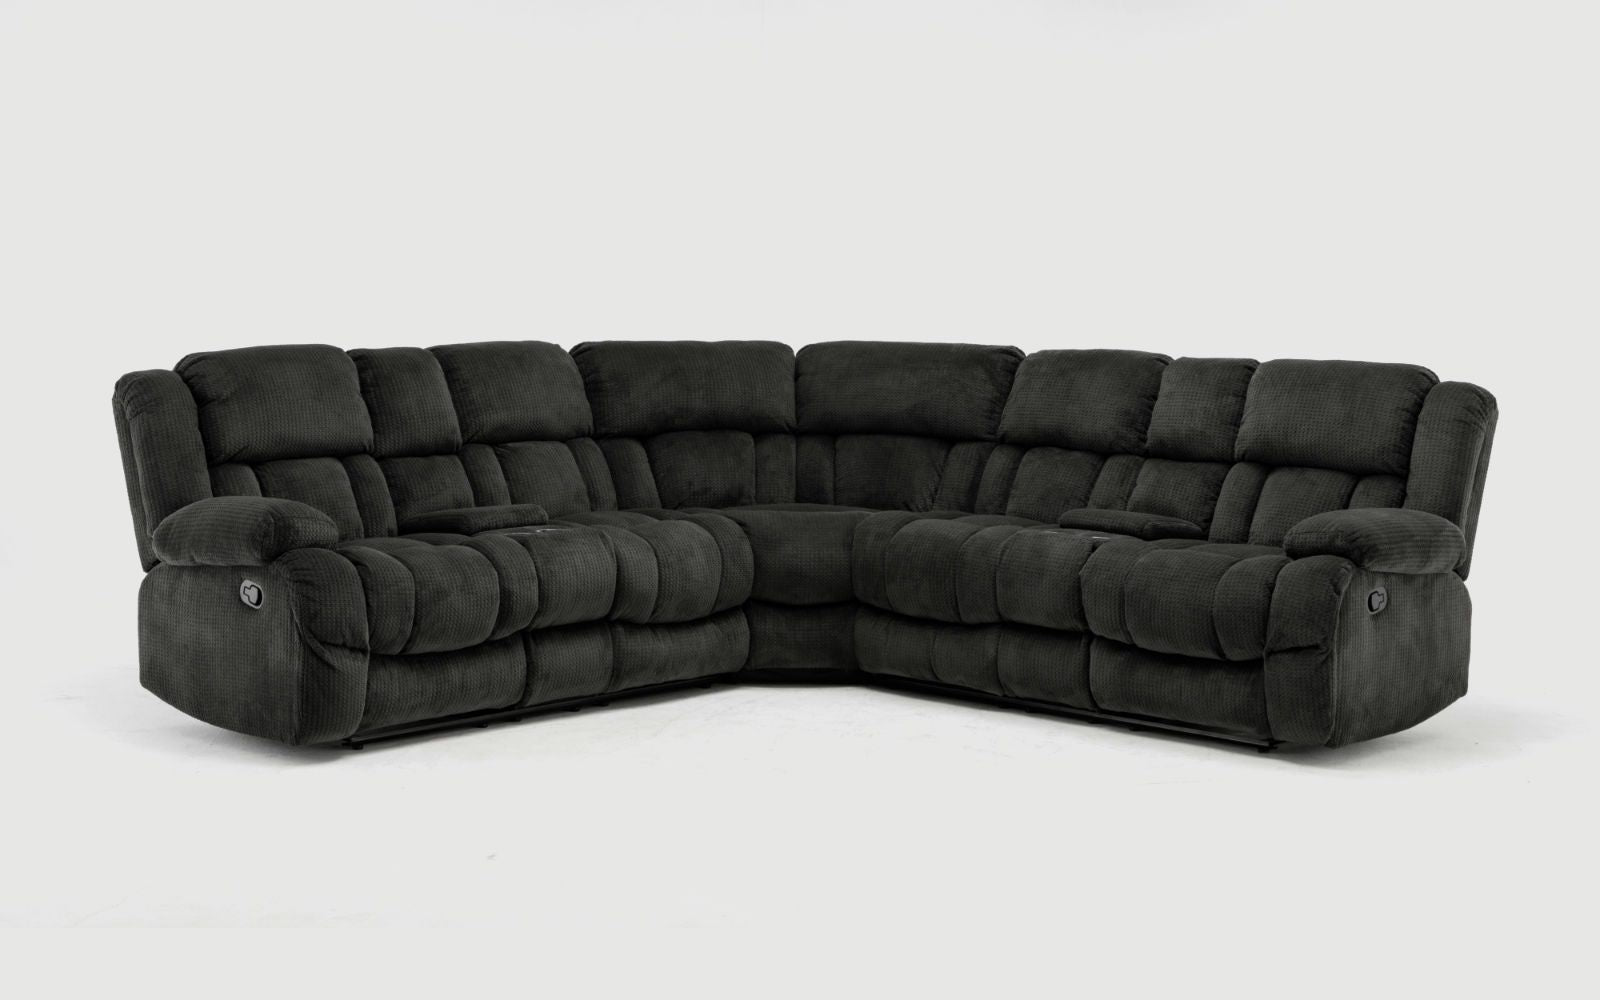 Raymond linen fabric l shape sectional recliner sofa for L shaped sofa with recliner